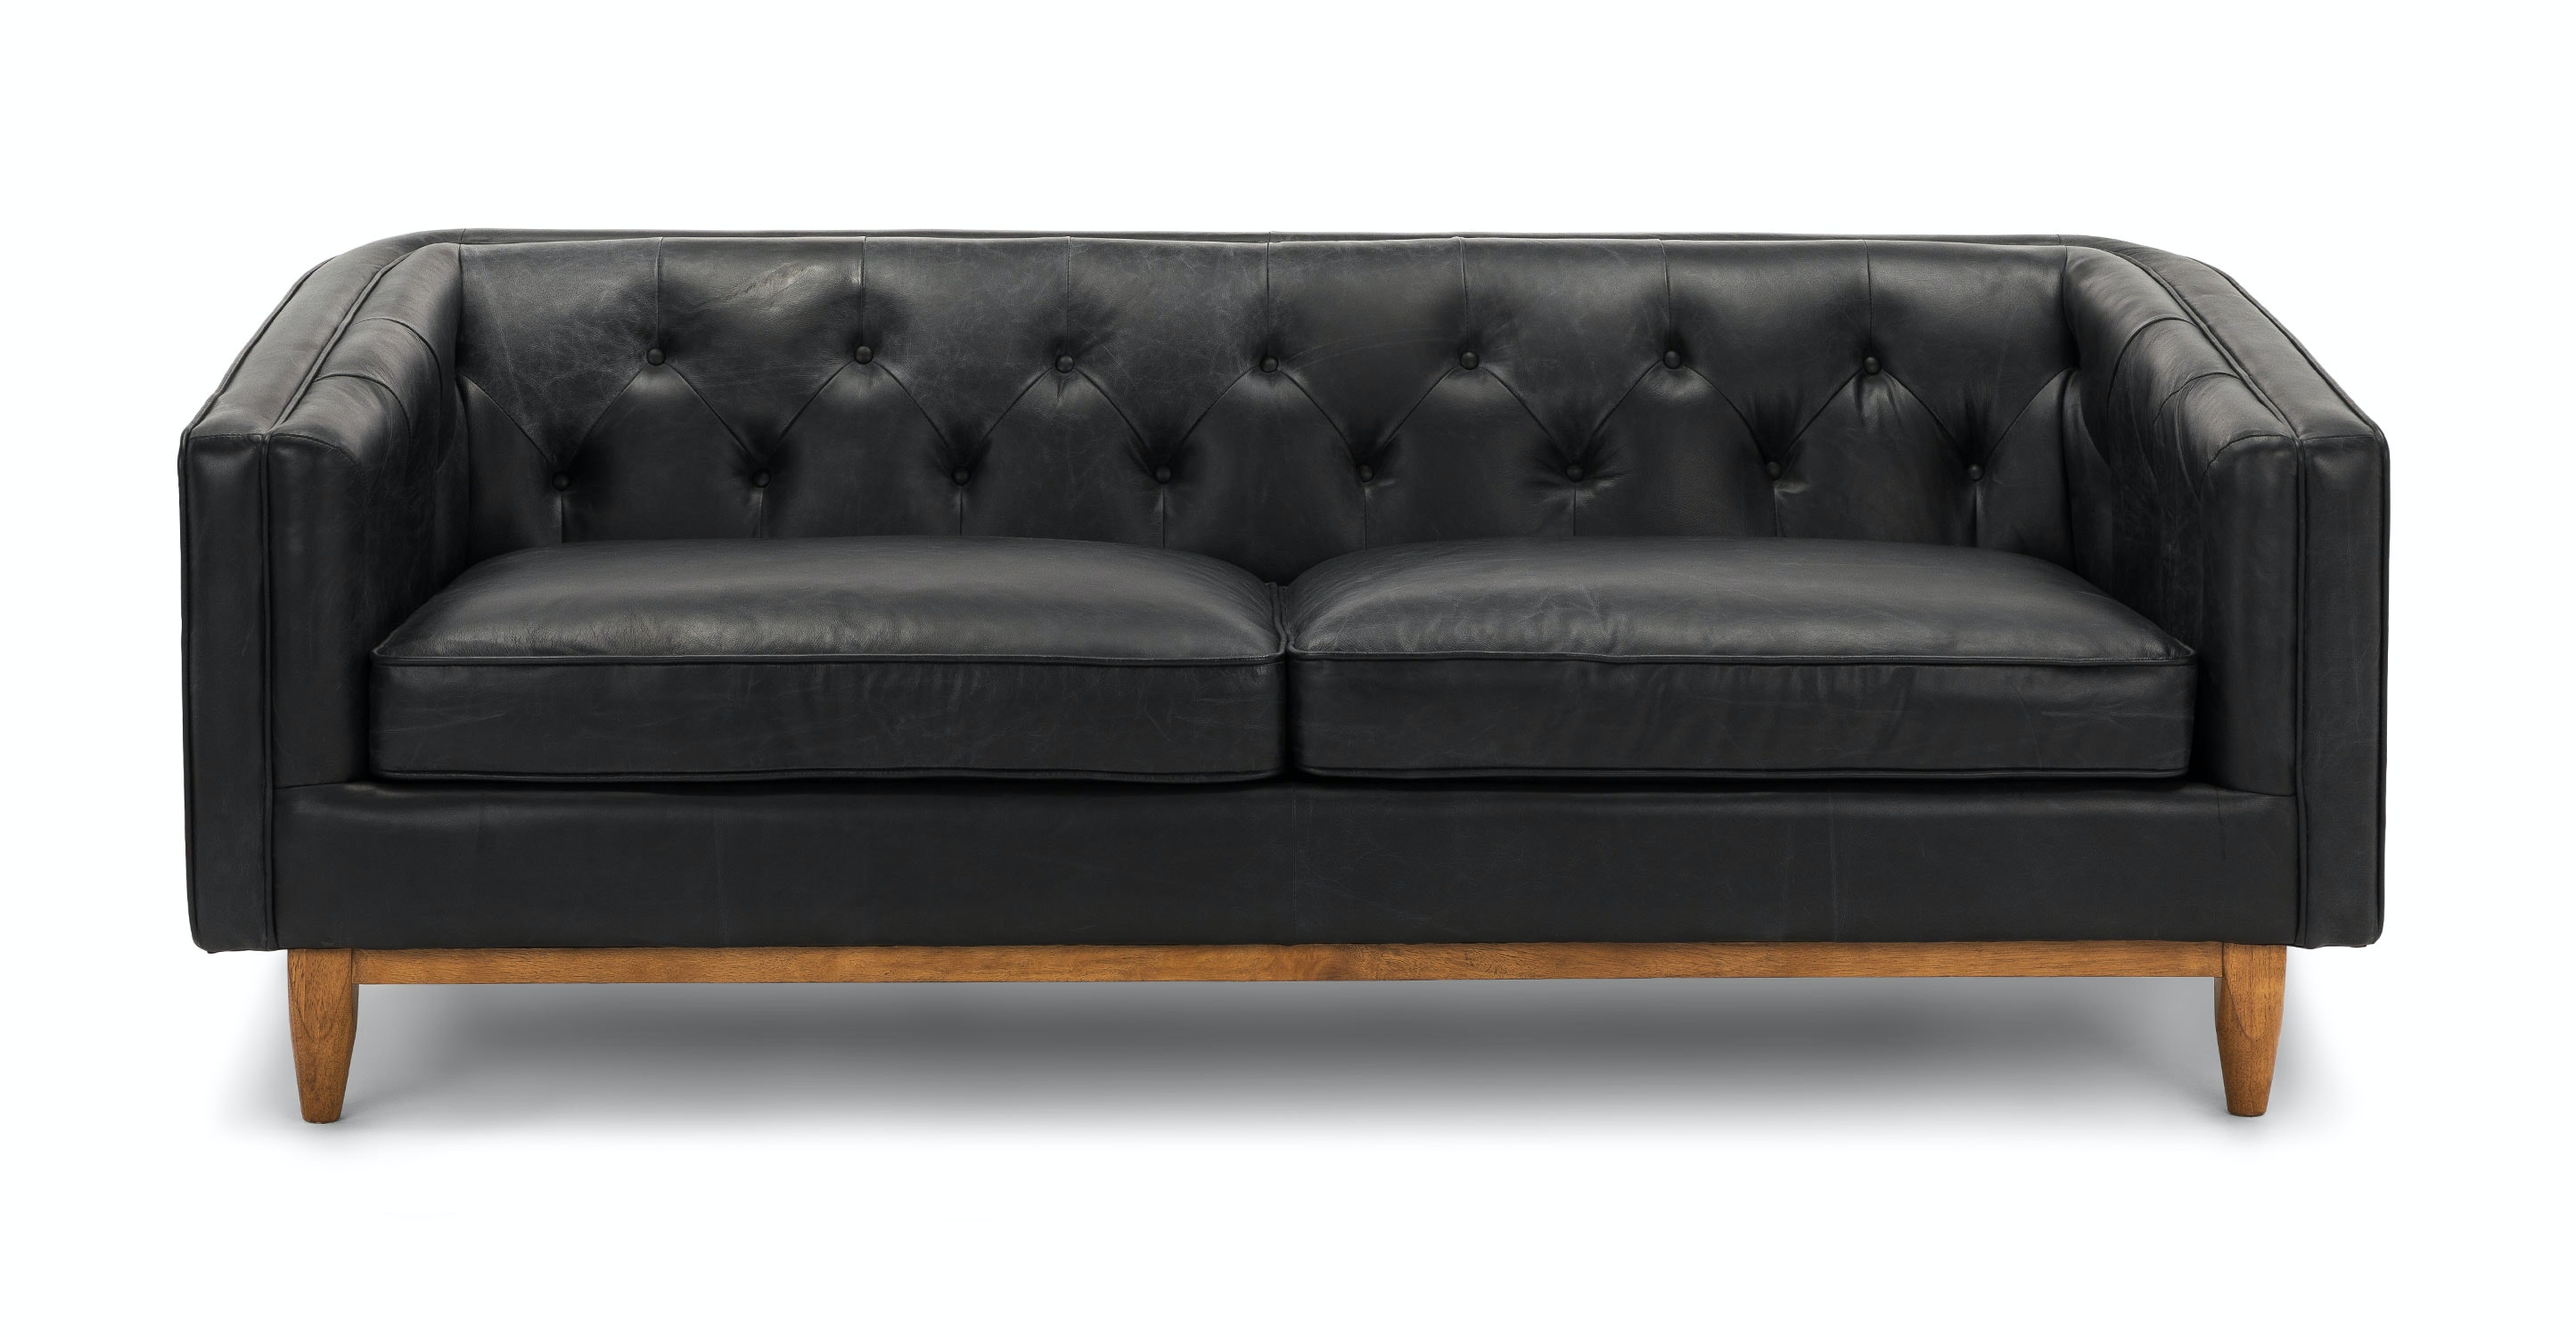 J Robert Scott » Blog Archive » Sled Sofa in Black Leather